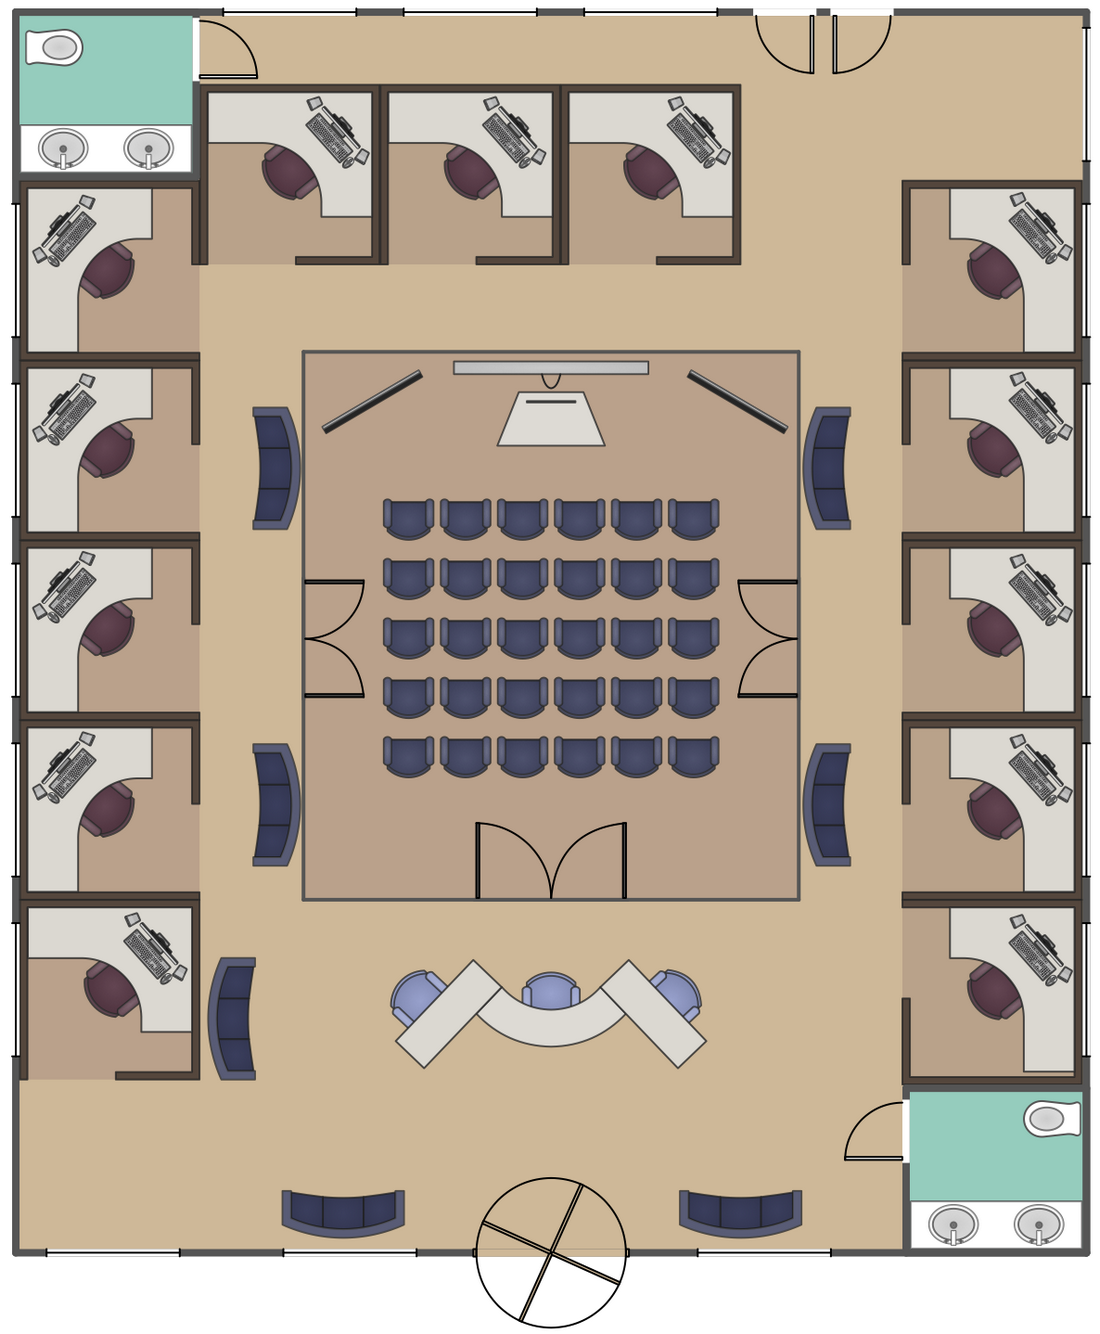 Office Layout Plans Solution | ConceptDraw.com